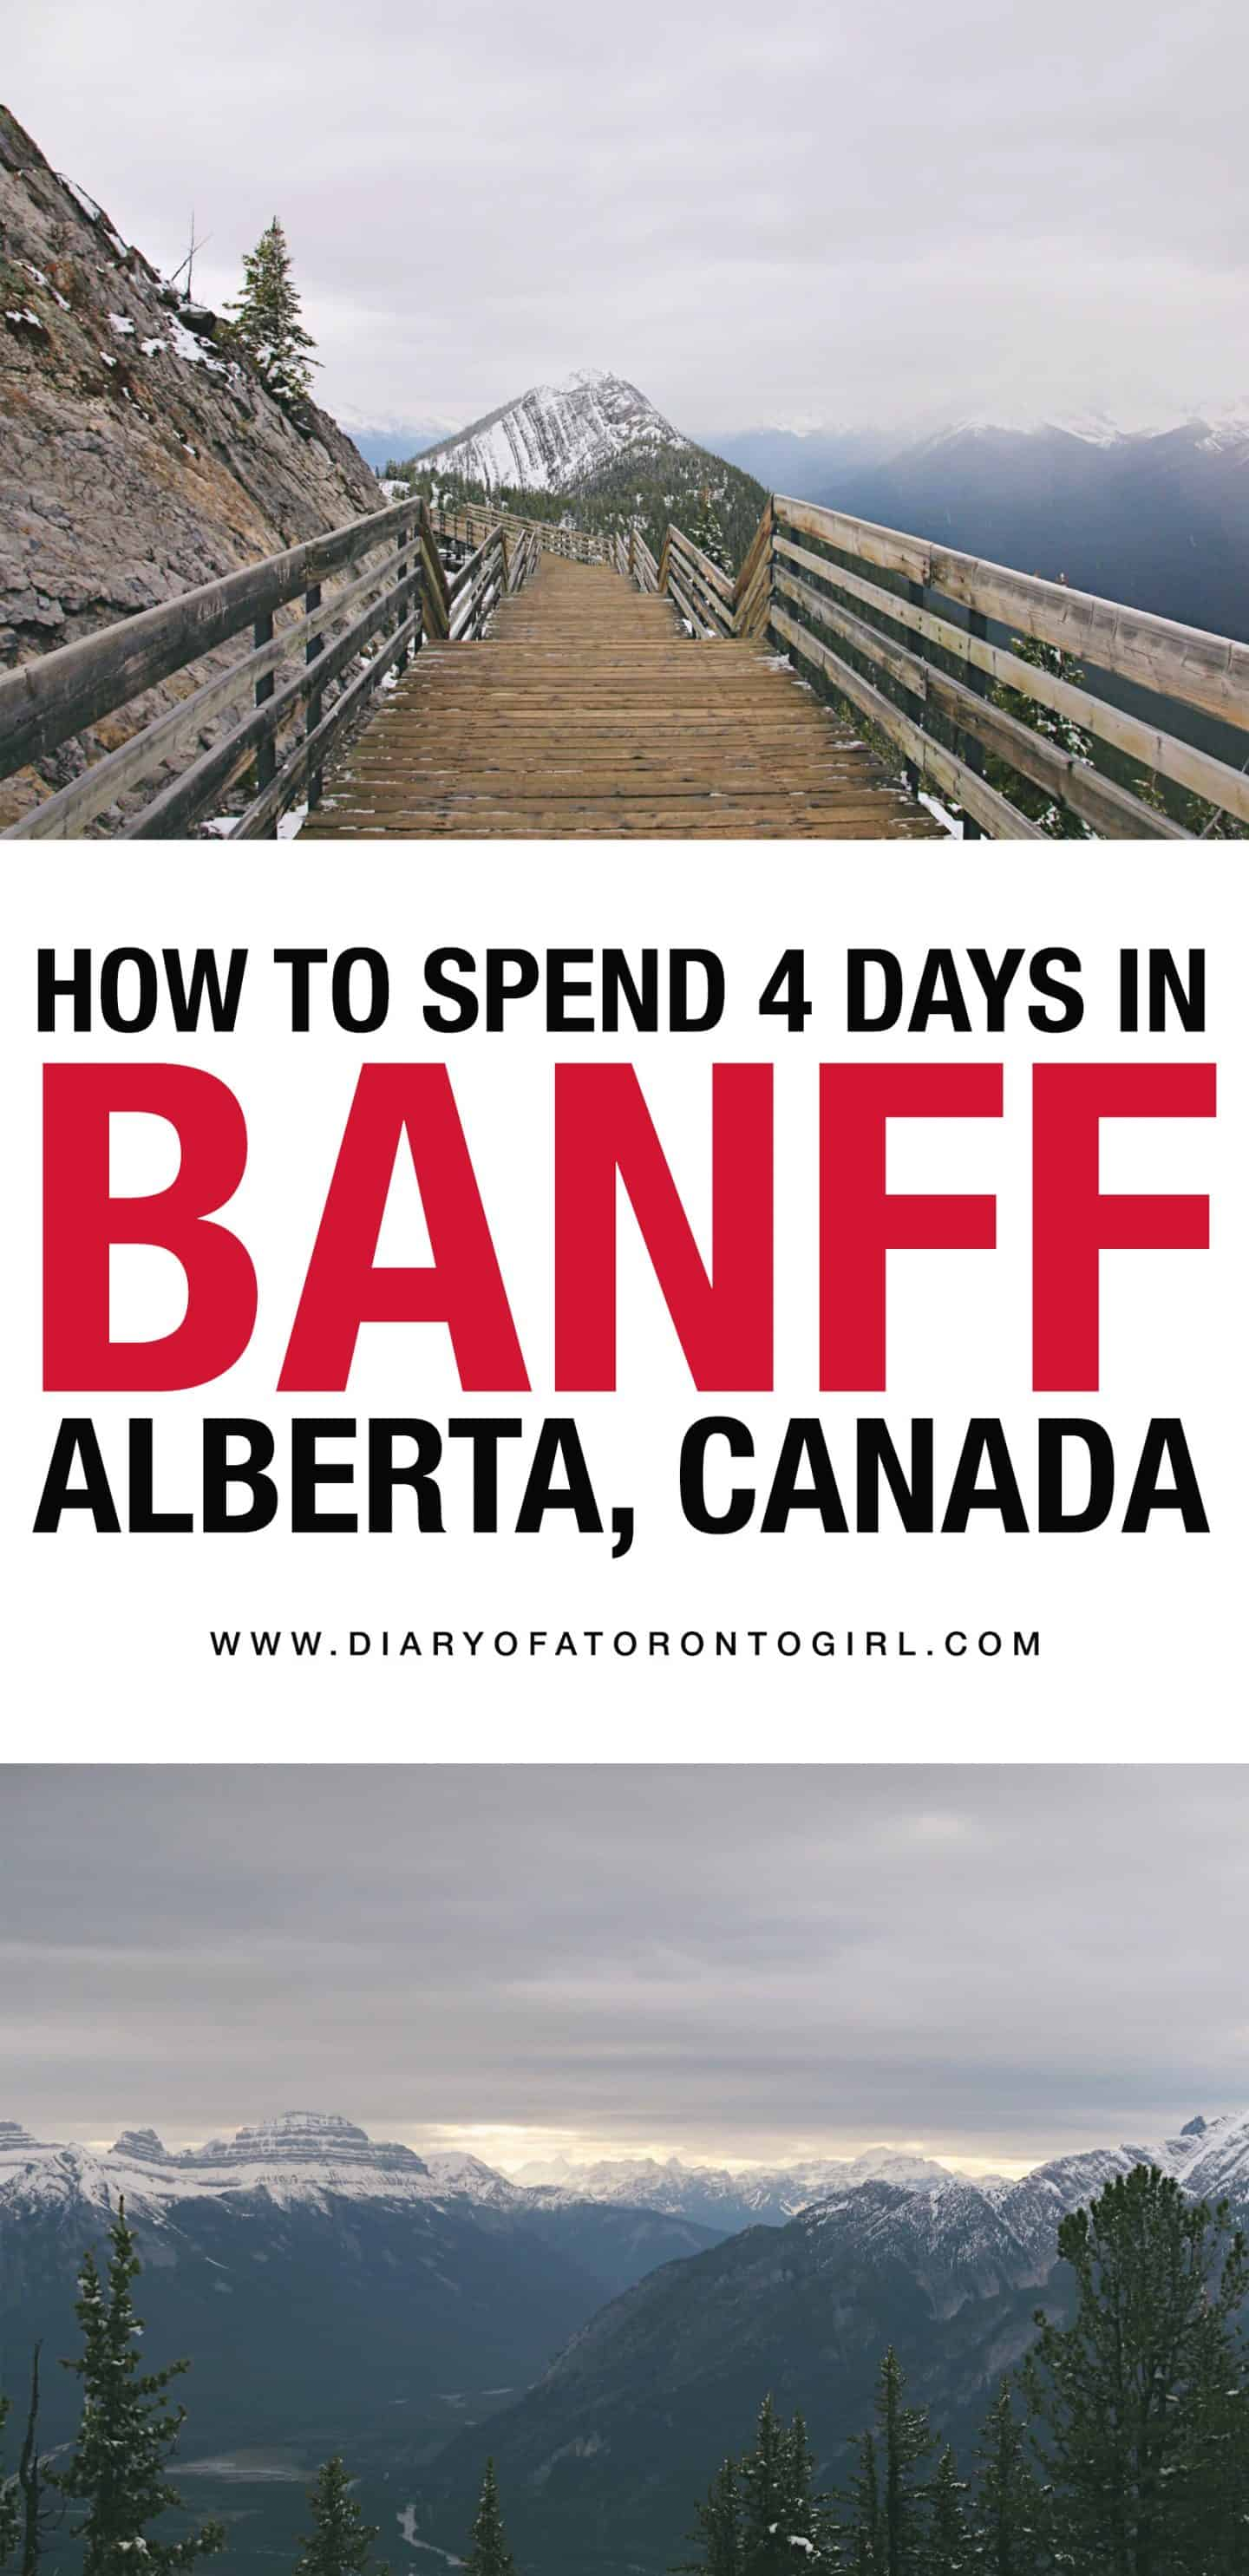 Planning a visit to Banff and Jasper National Parks in Alberta, Canada? Here's your guide on how to do the ultimate Banff road trip in 4 days!